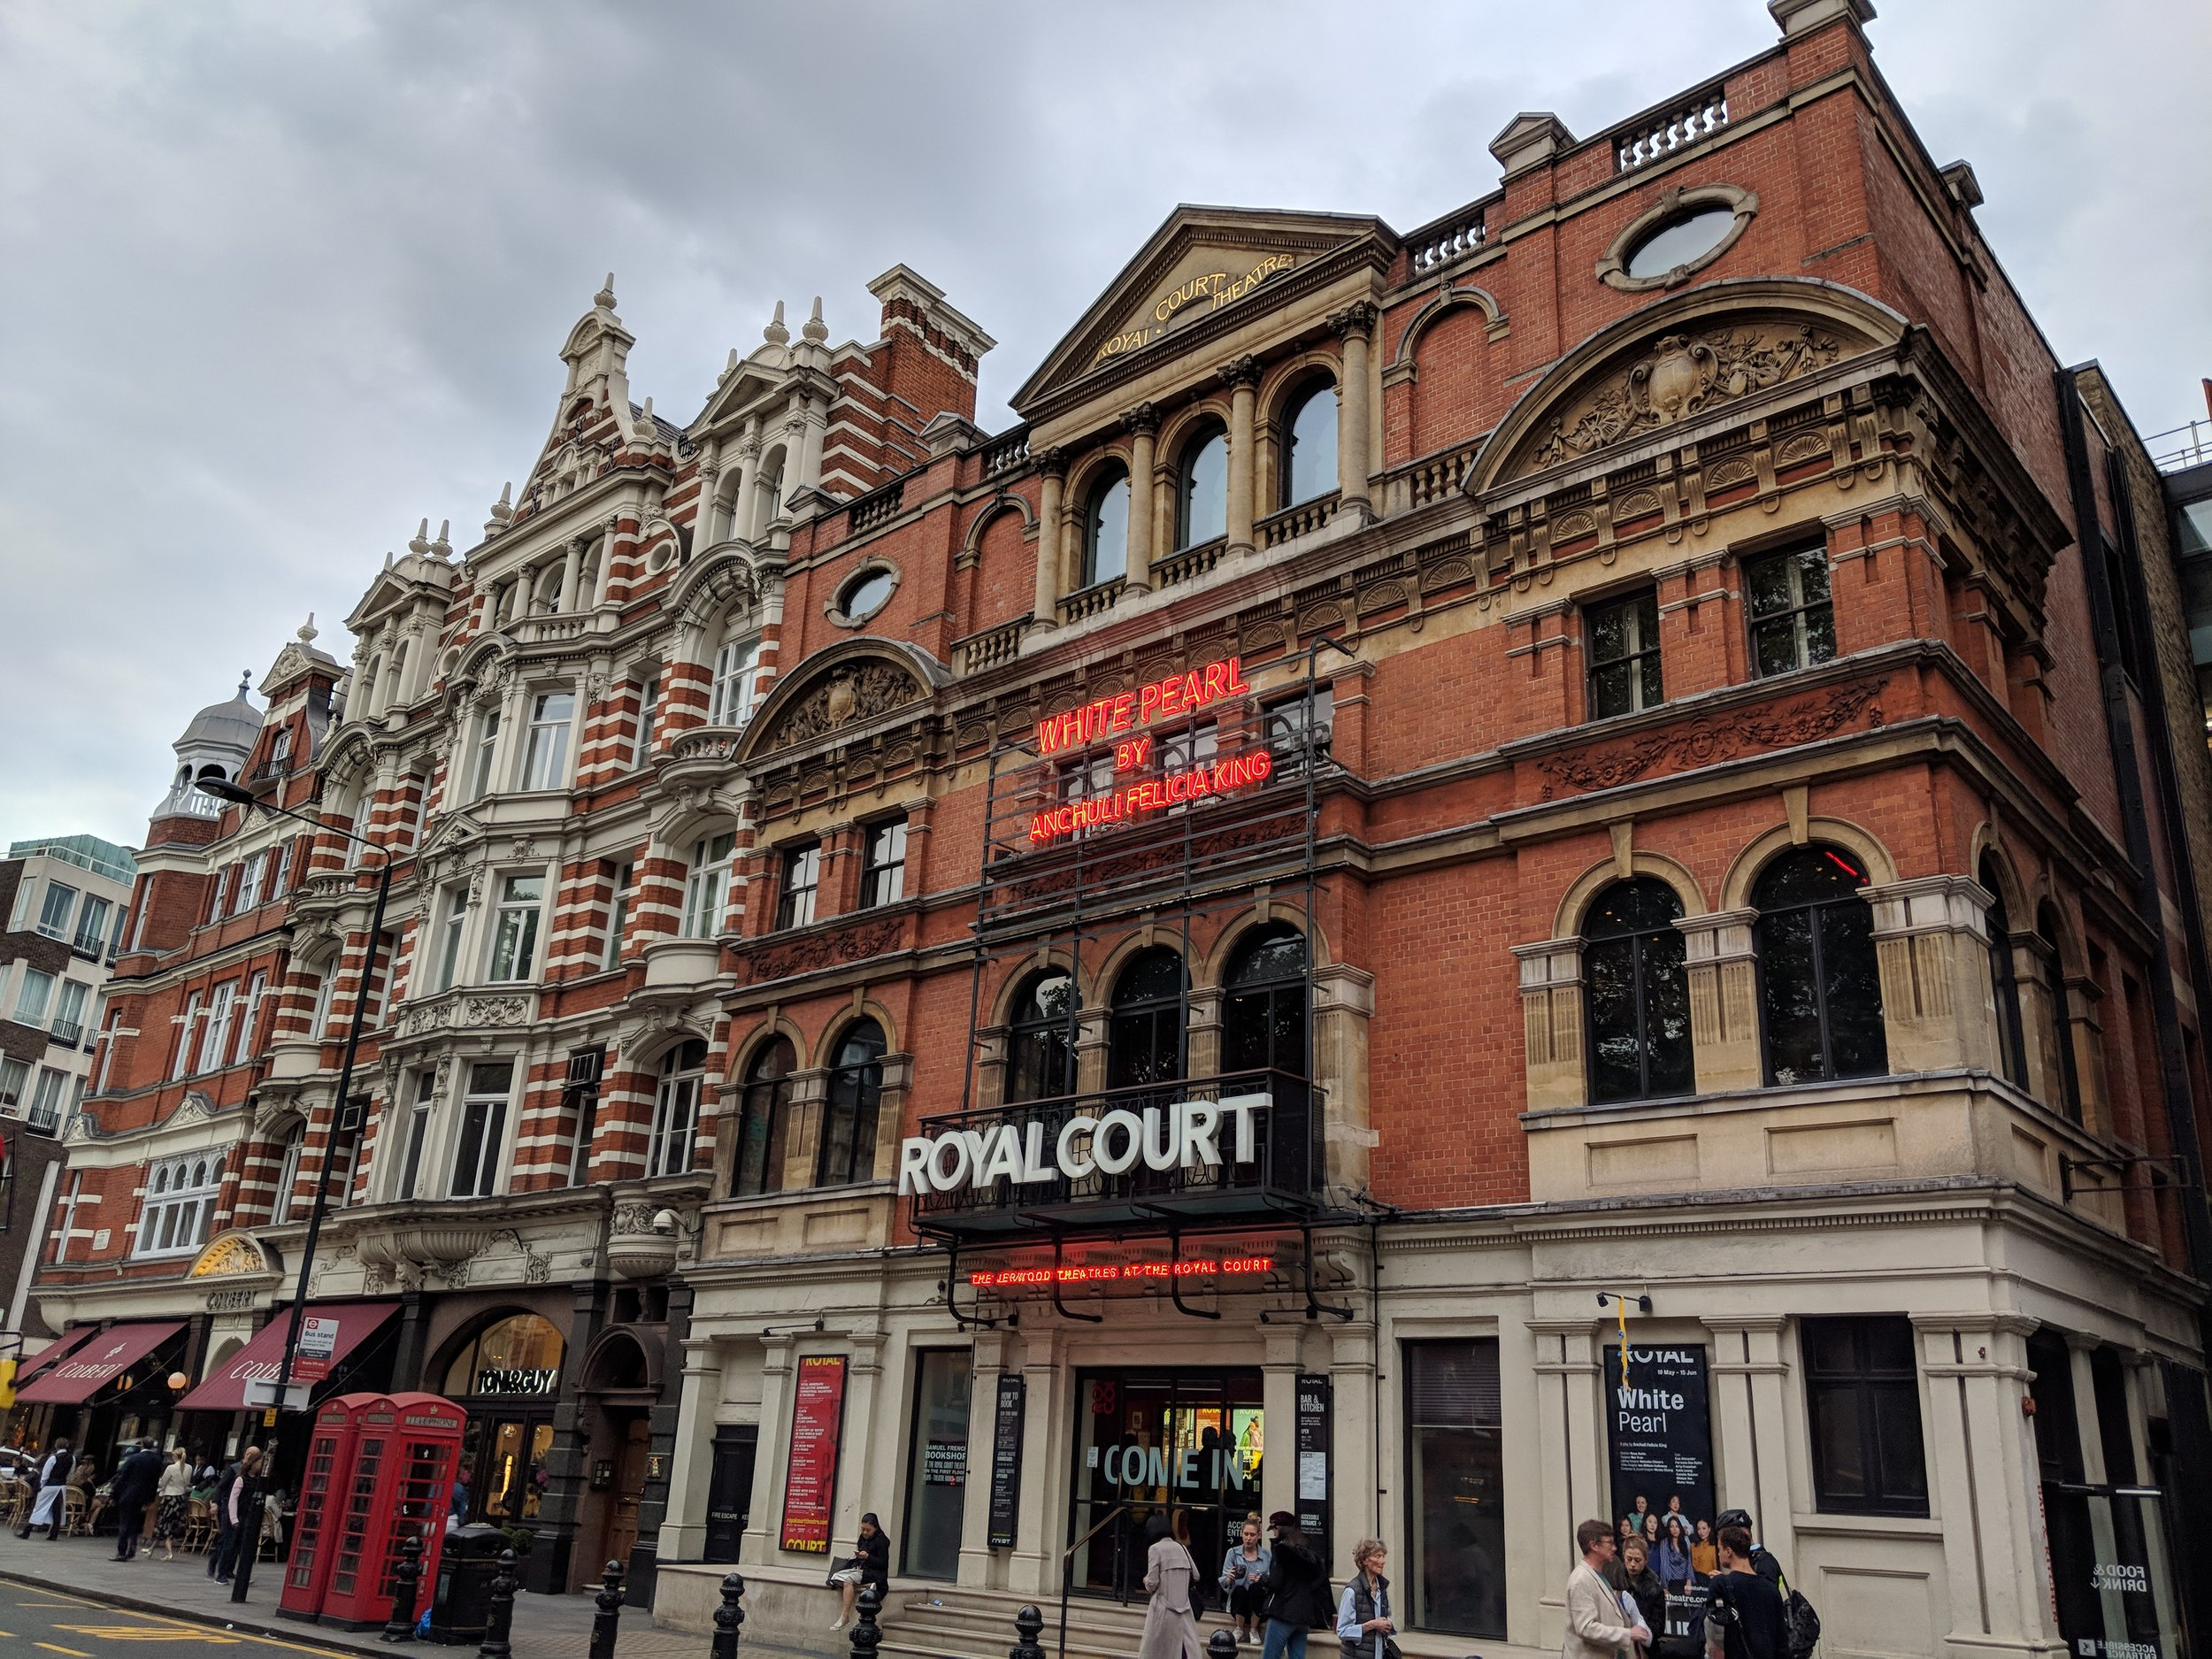 Royal Court Theatre(Upstairs) - visited 20/05/2019